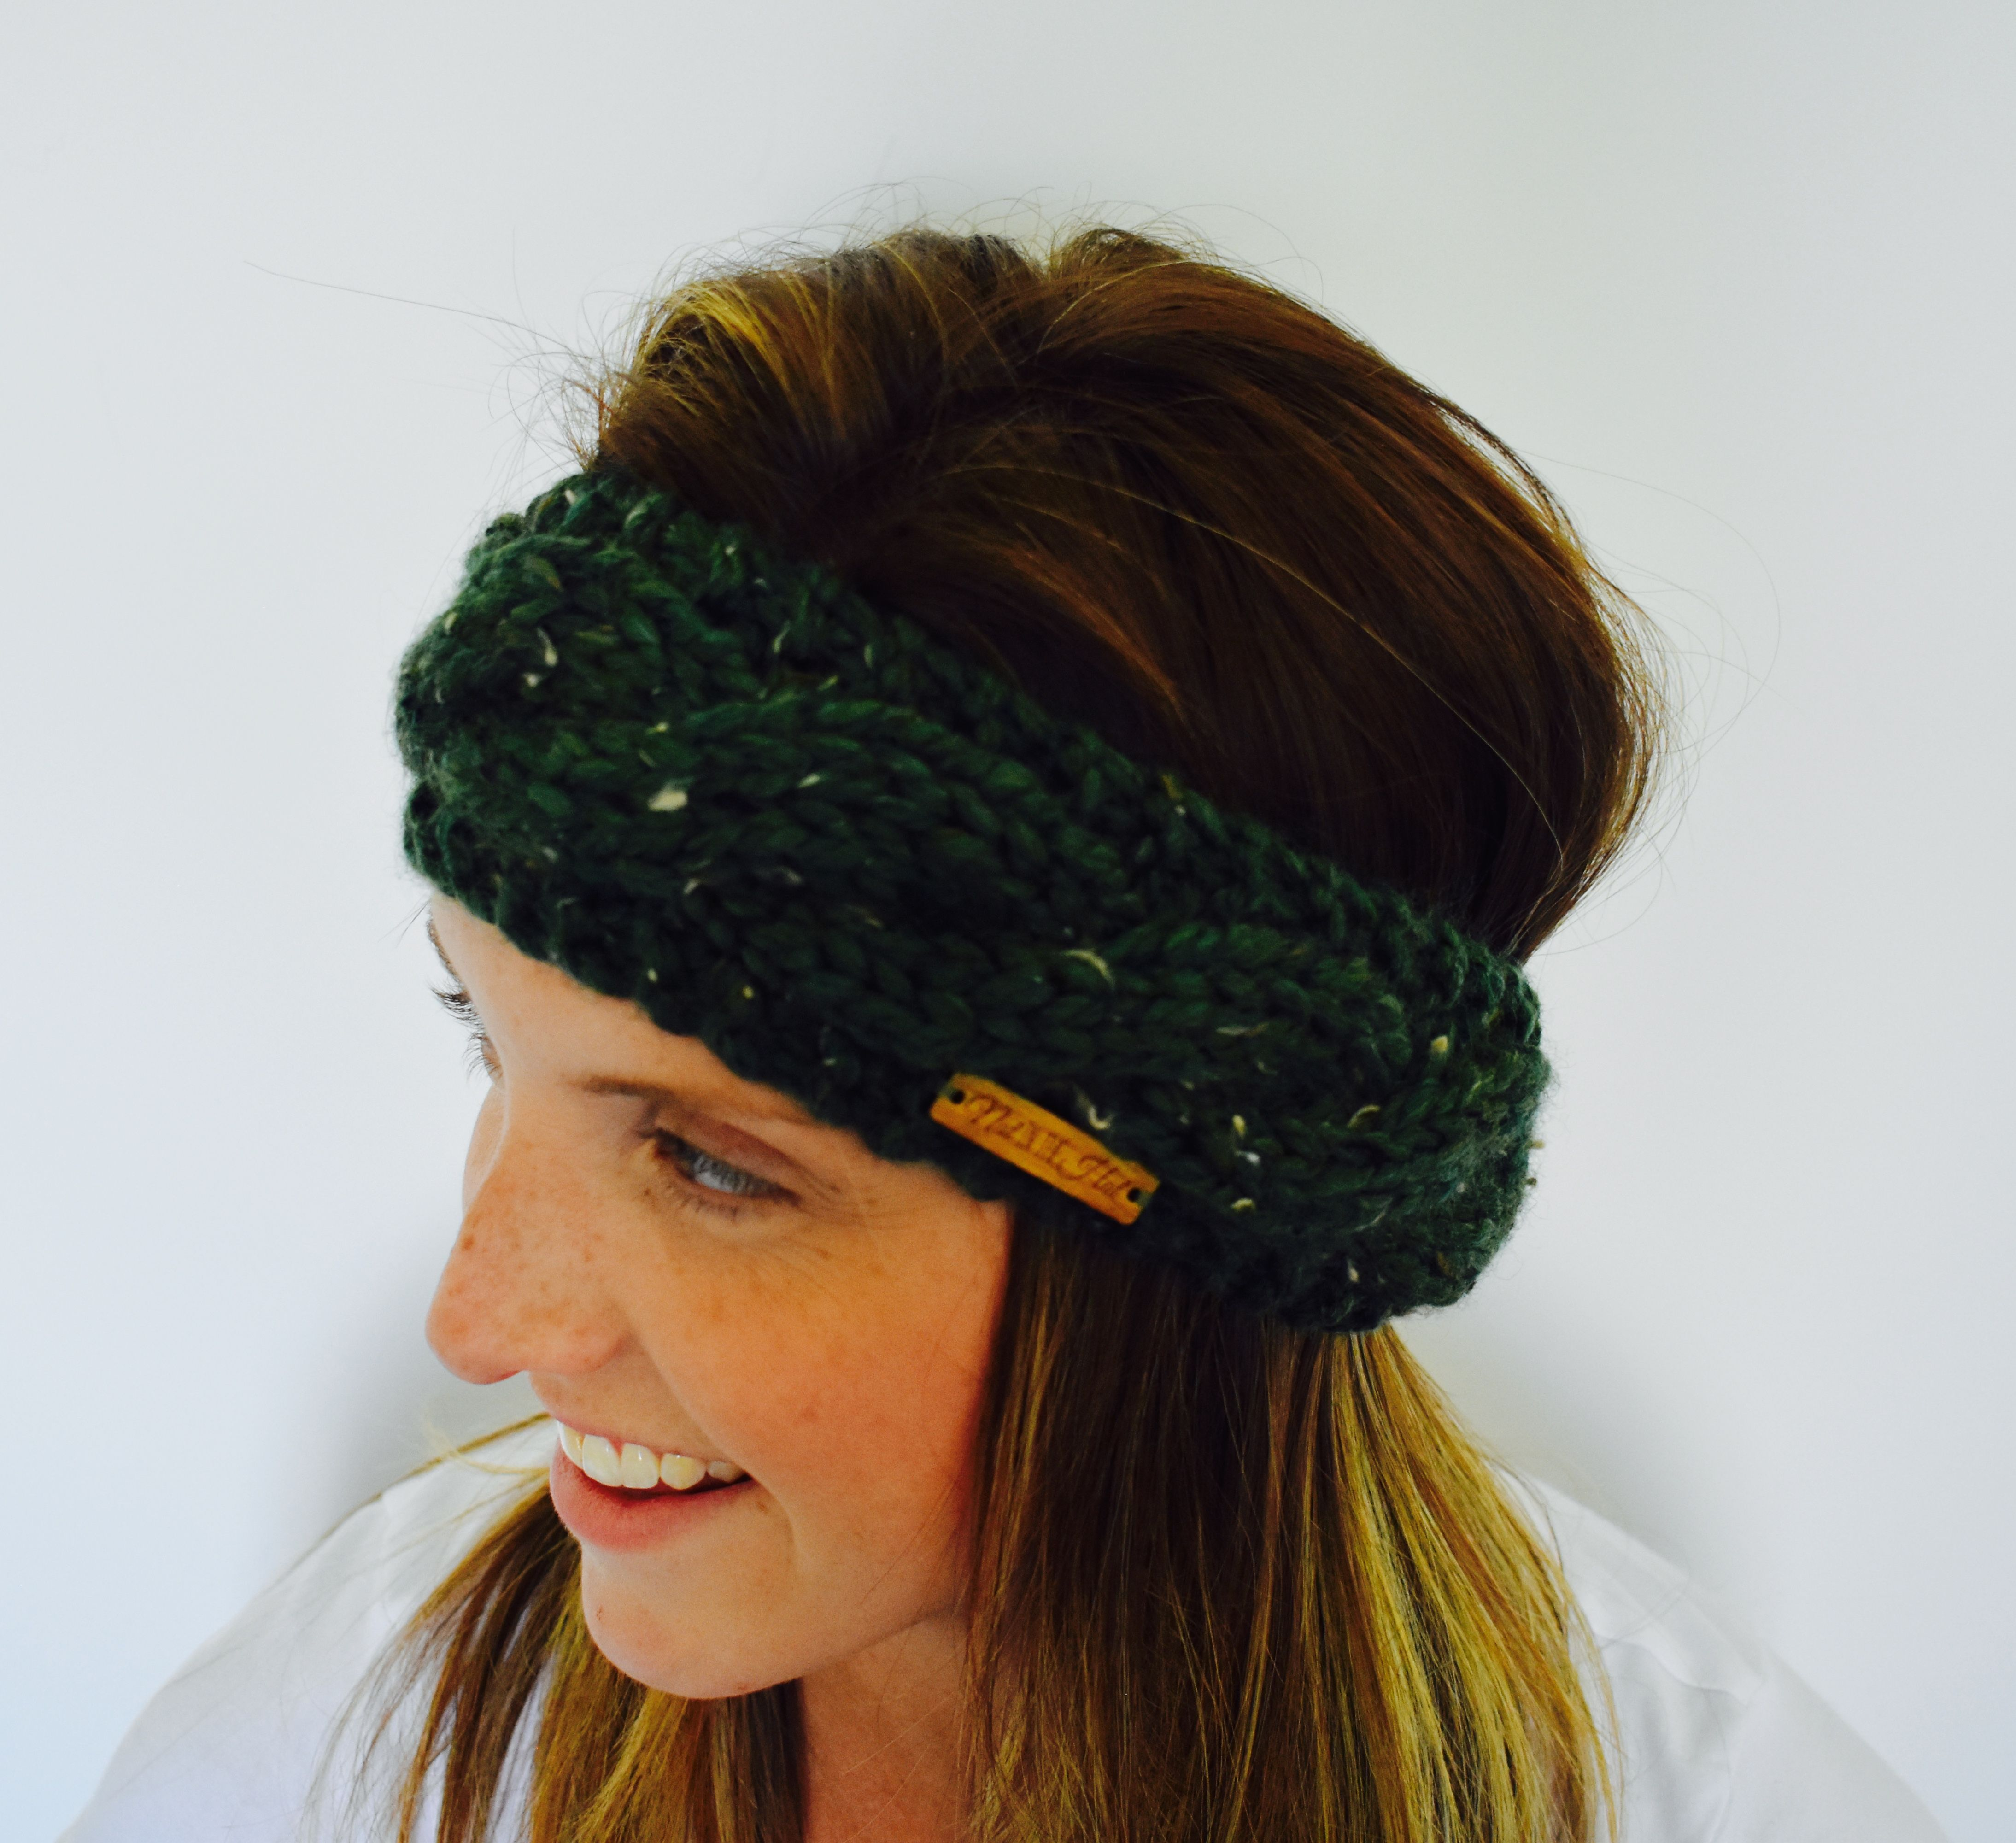 The Wren Wrap  Thick and warm braided headband that will keep you warm through the fall and into winter. Made with super bulky yarn, the wind won't be getting through these cables and causing a chill anytime soon.   **Pattern by Indie Fibre Art**